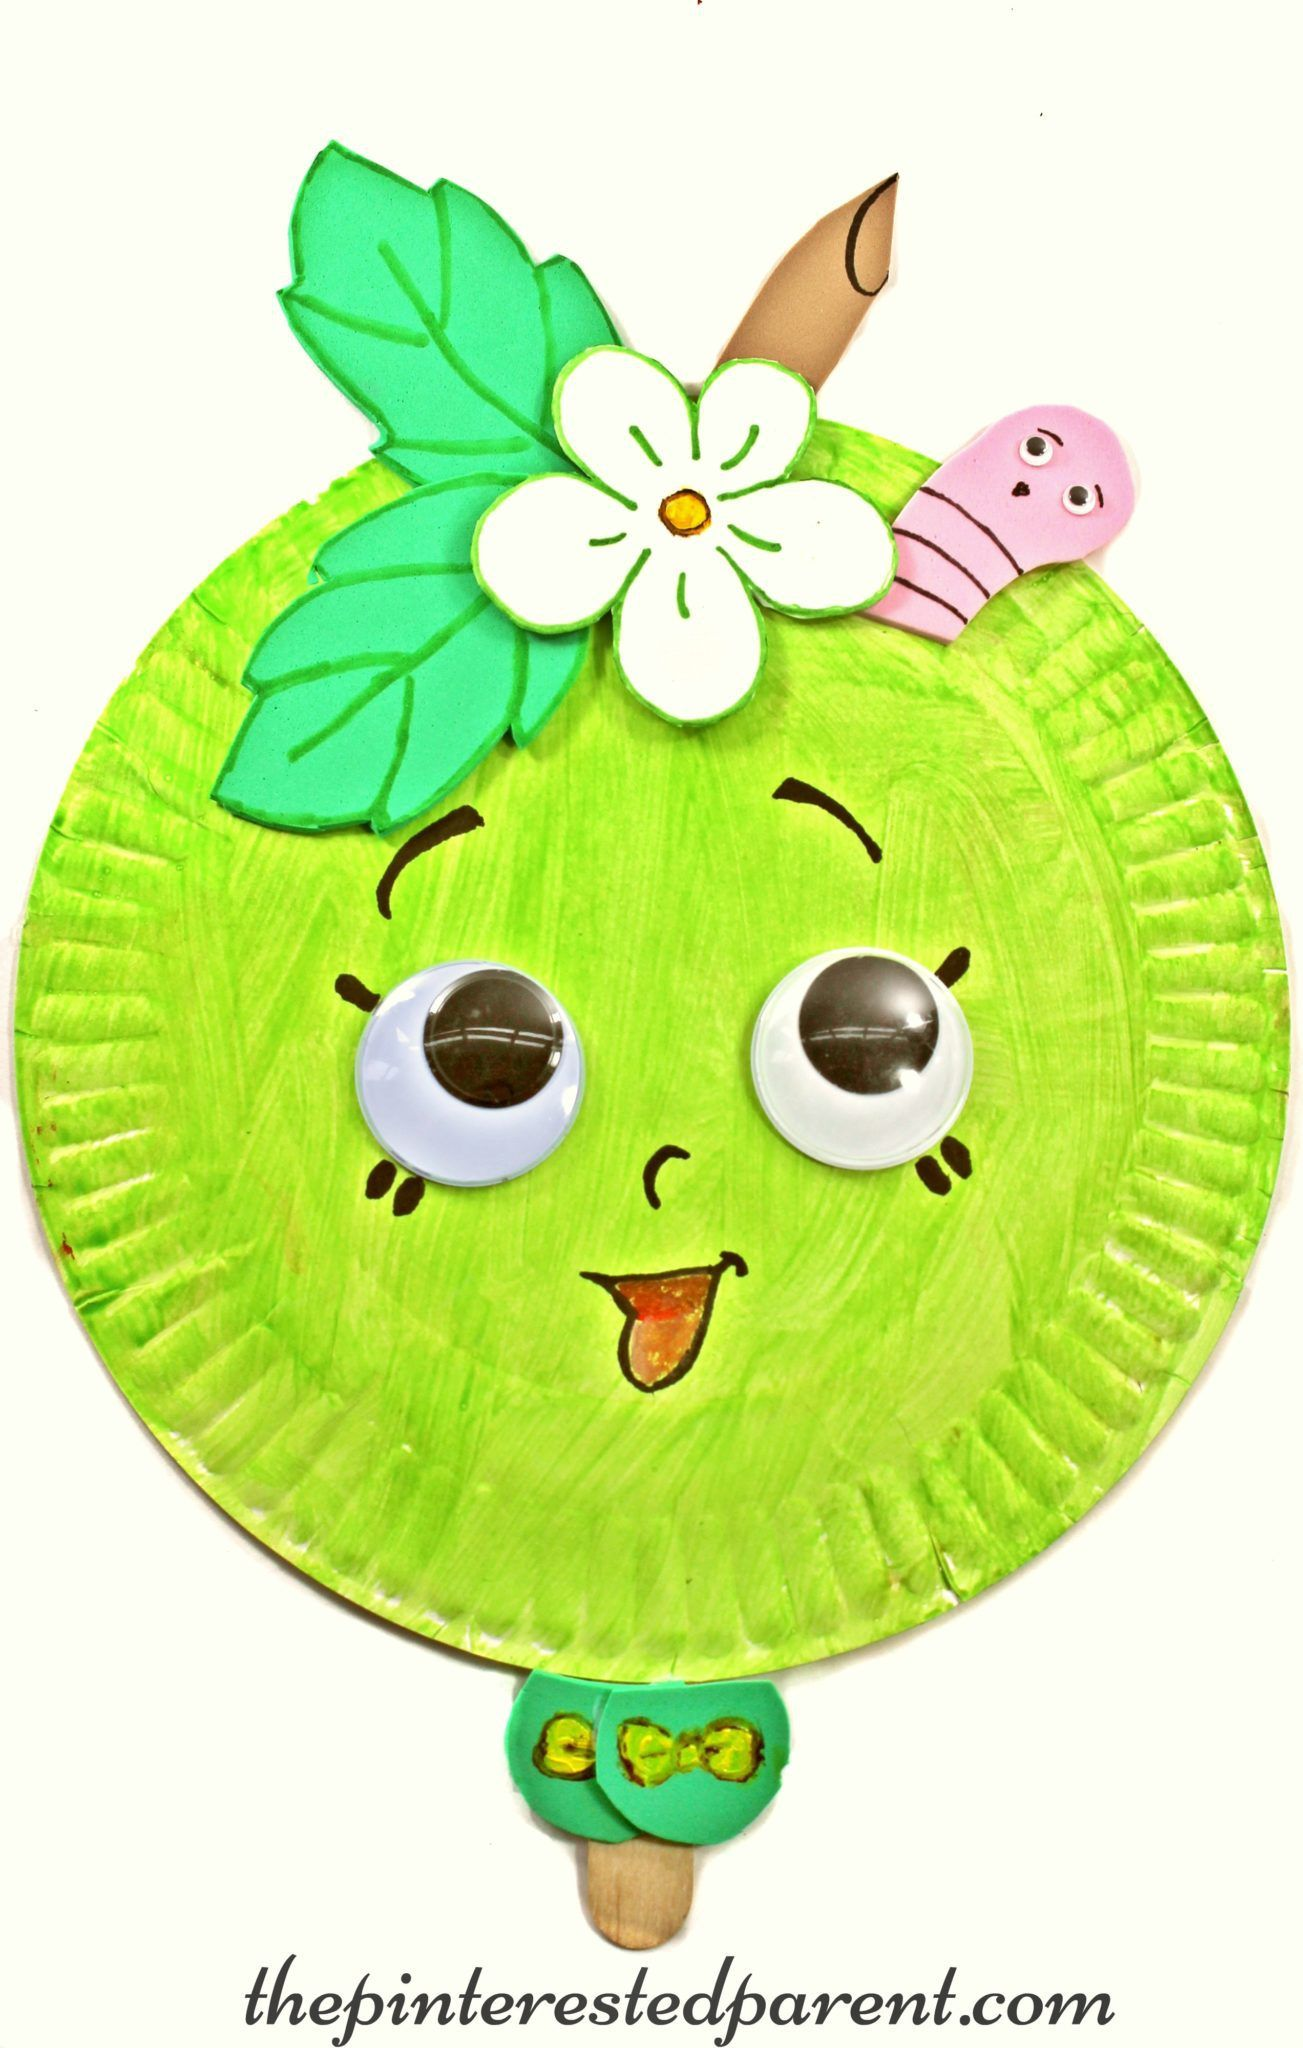 Paper plate mask inspired by Shopkins Green Apple Blossom - kidu0027s character crafts and activities for  sc 1 st  Pinterest & Paper plate mask inspired by Shopkins Green Apple Blossom - kidu0027s ...